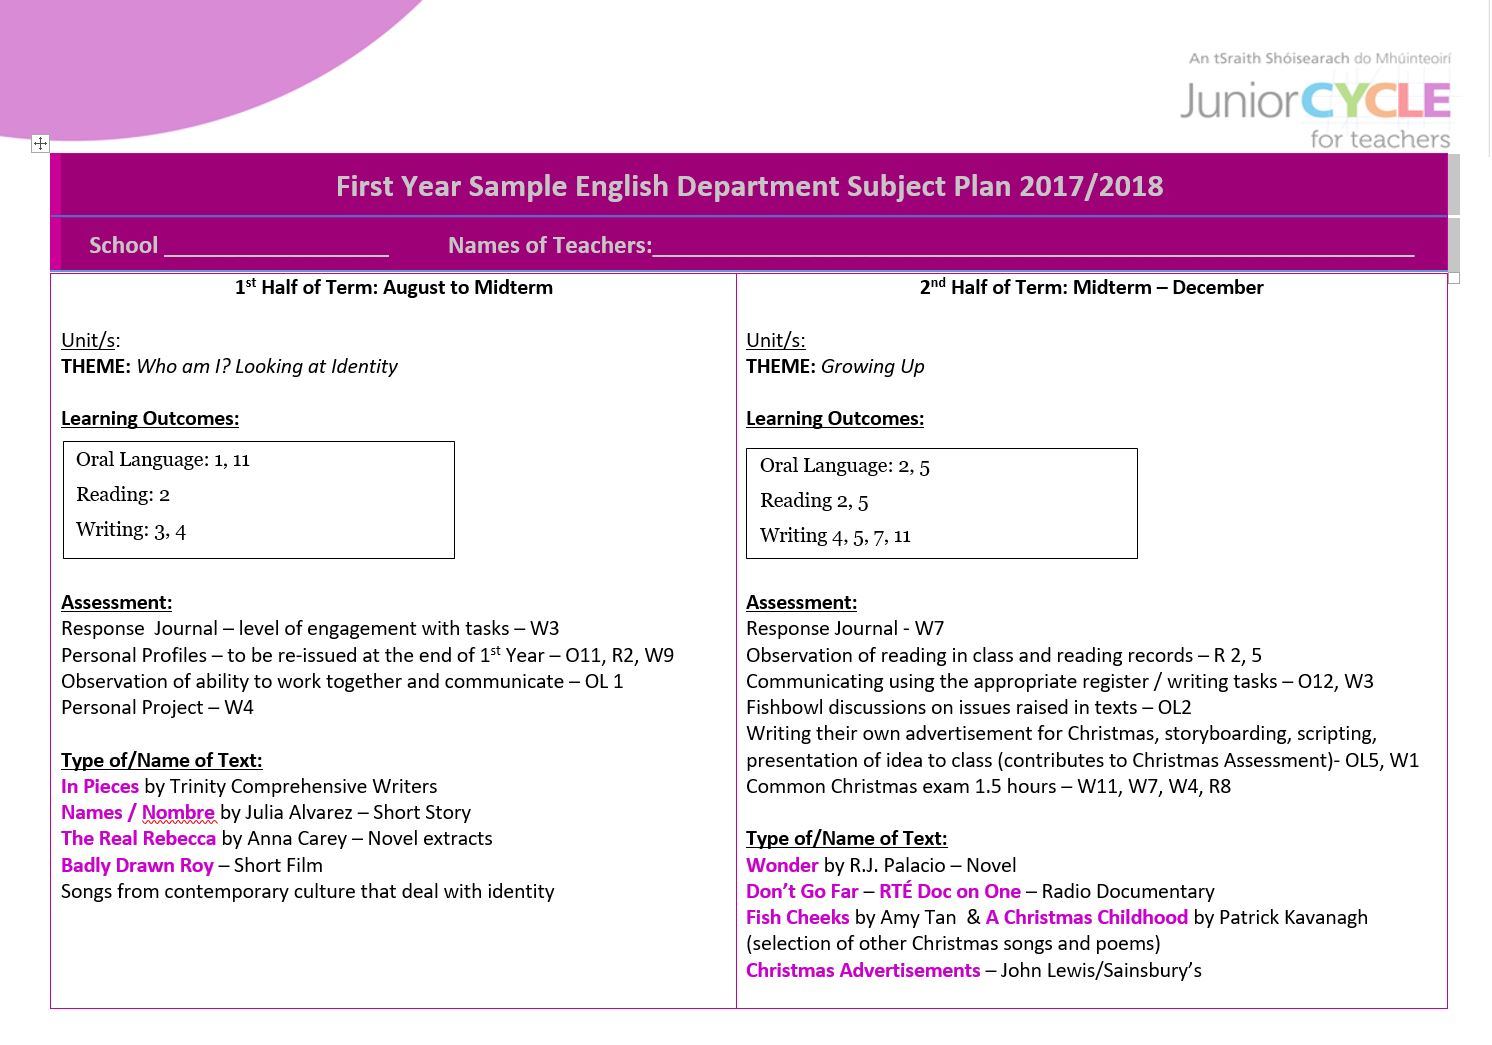 First Year Sample English Department Subject Plan 2016/2017